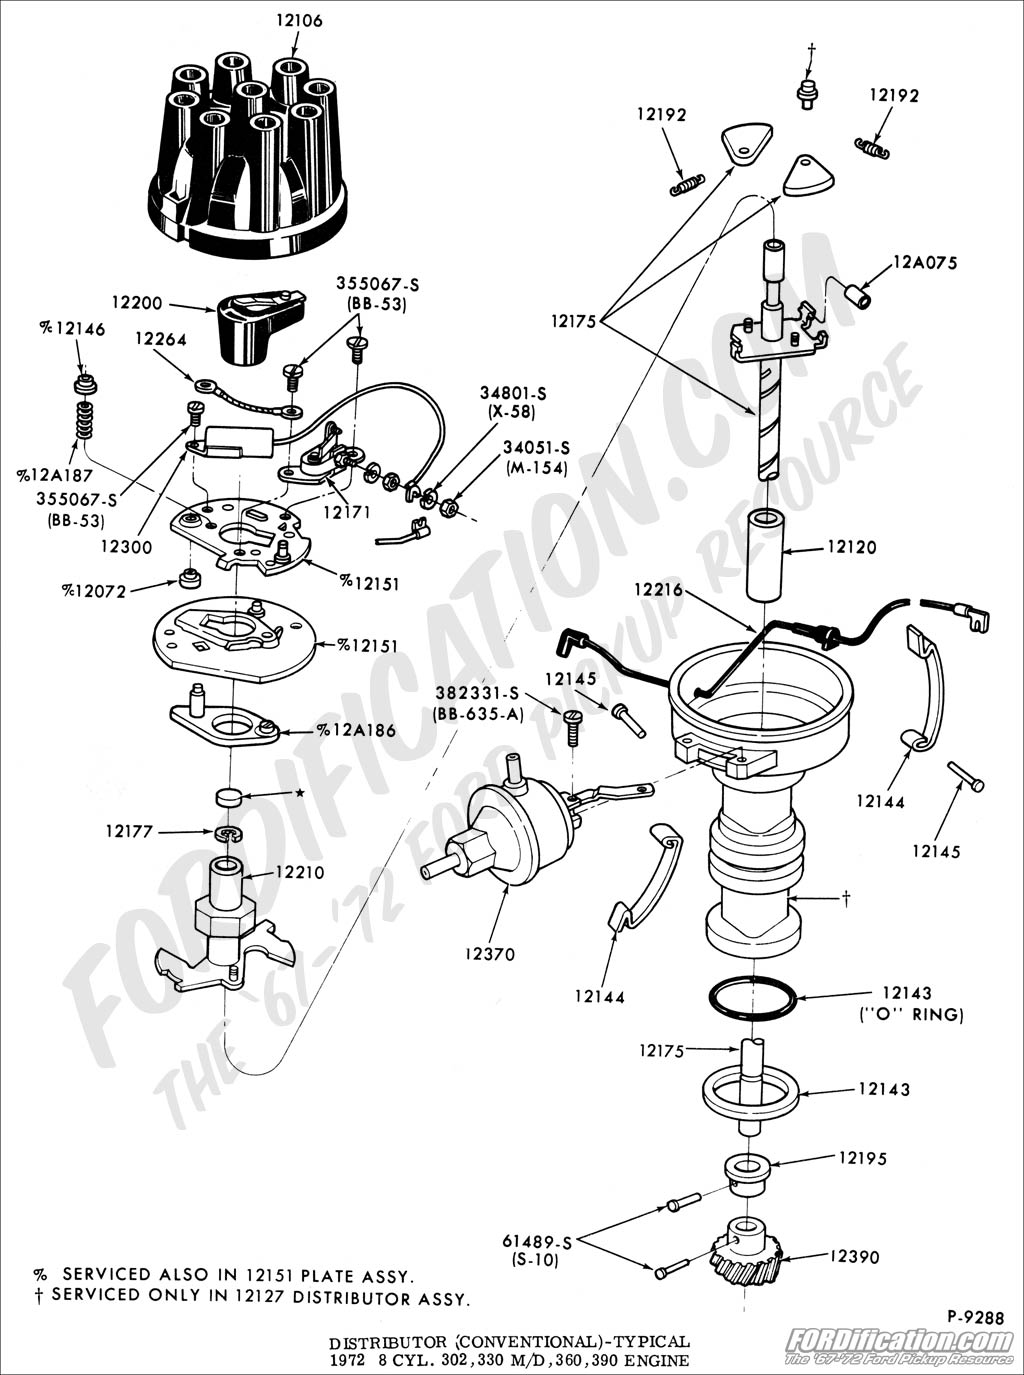 wiring diagram for 1989 ford f150 302  wiring  get free image about wiring diagram